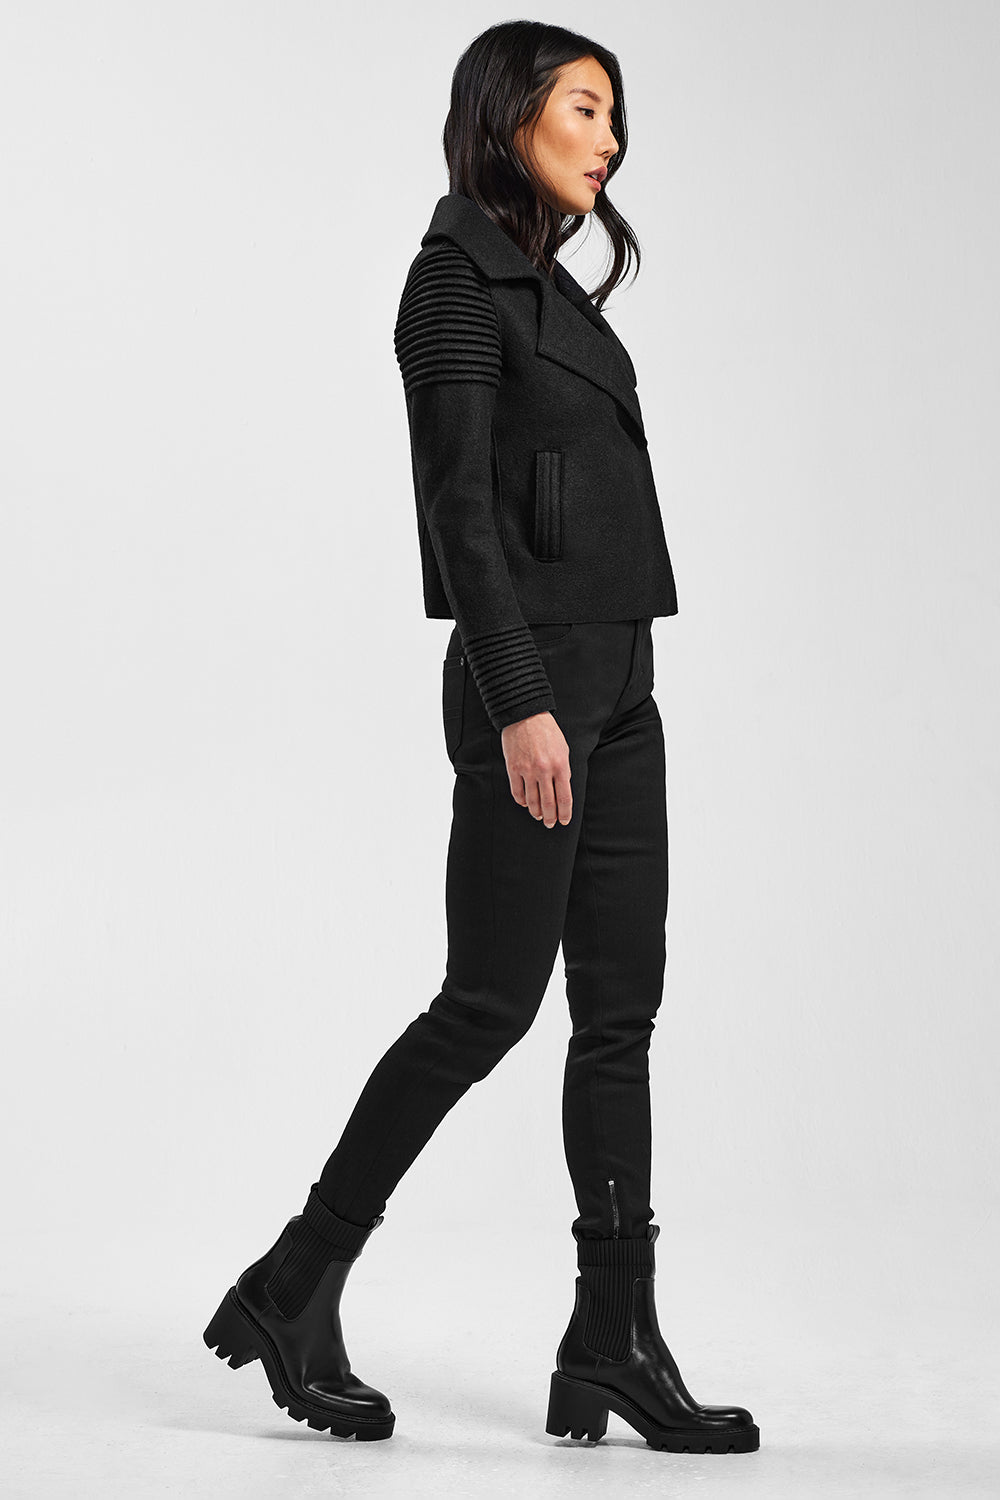 Sentaler Bomber Jacket with Ribbed Shoulders and Cuffs featured in Superfine Alpaca and available in Black. Seen from side.